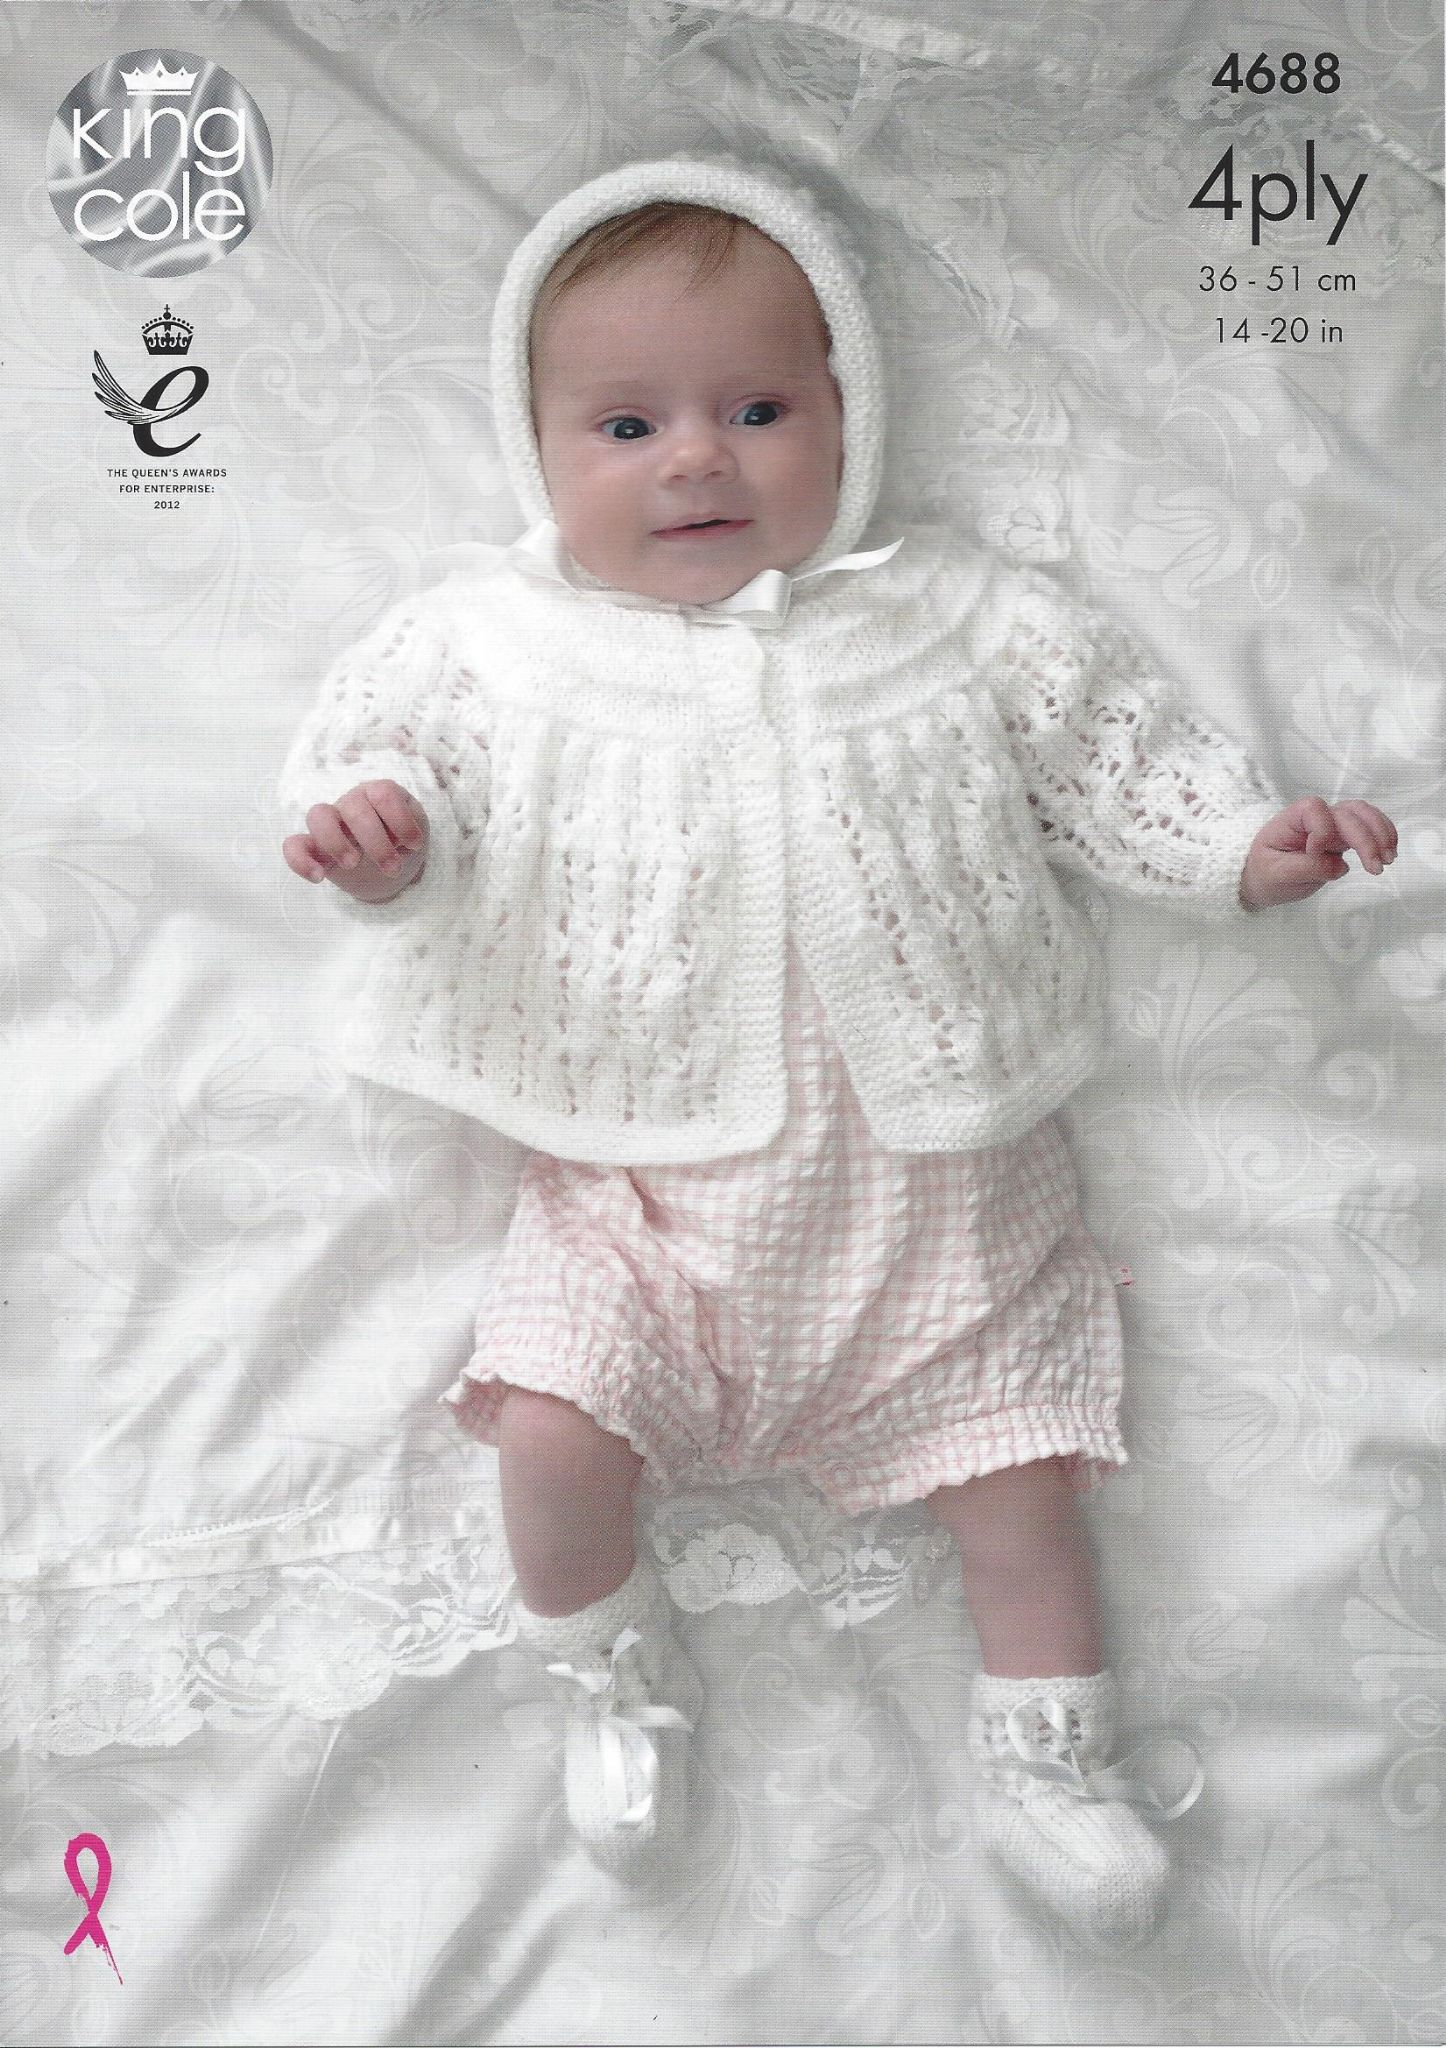 41b3ab0e1d55 King Cole Baby 4ply Knitting Pattern - 4688 Matinee Coat Cardigan ...